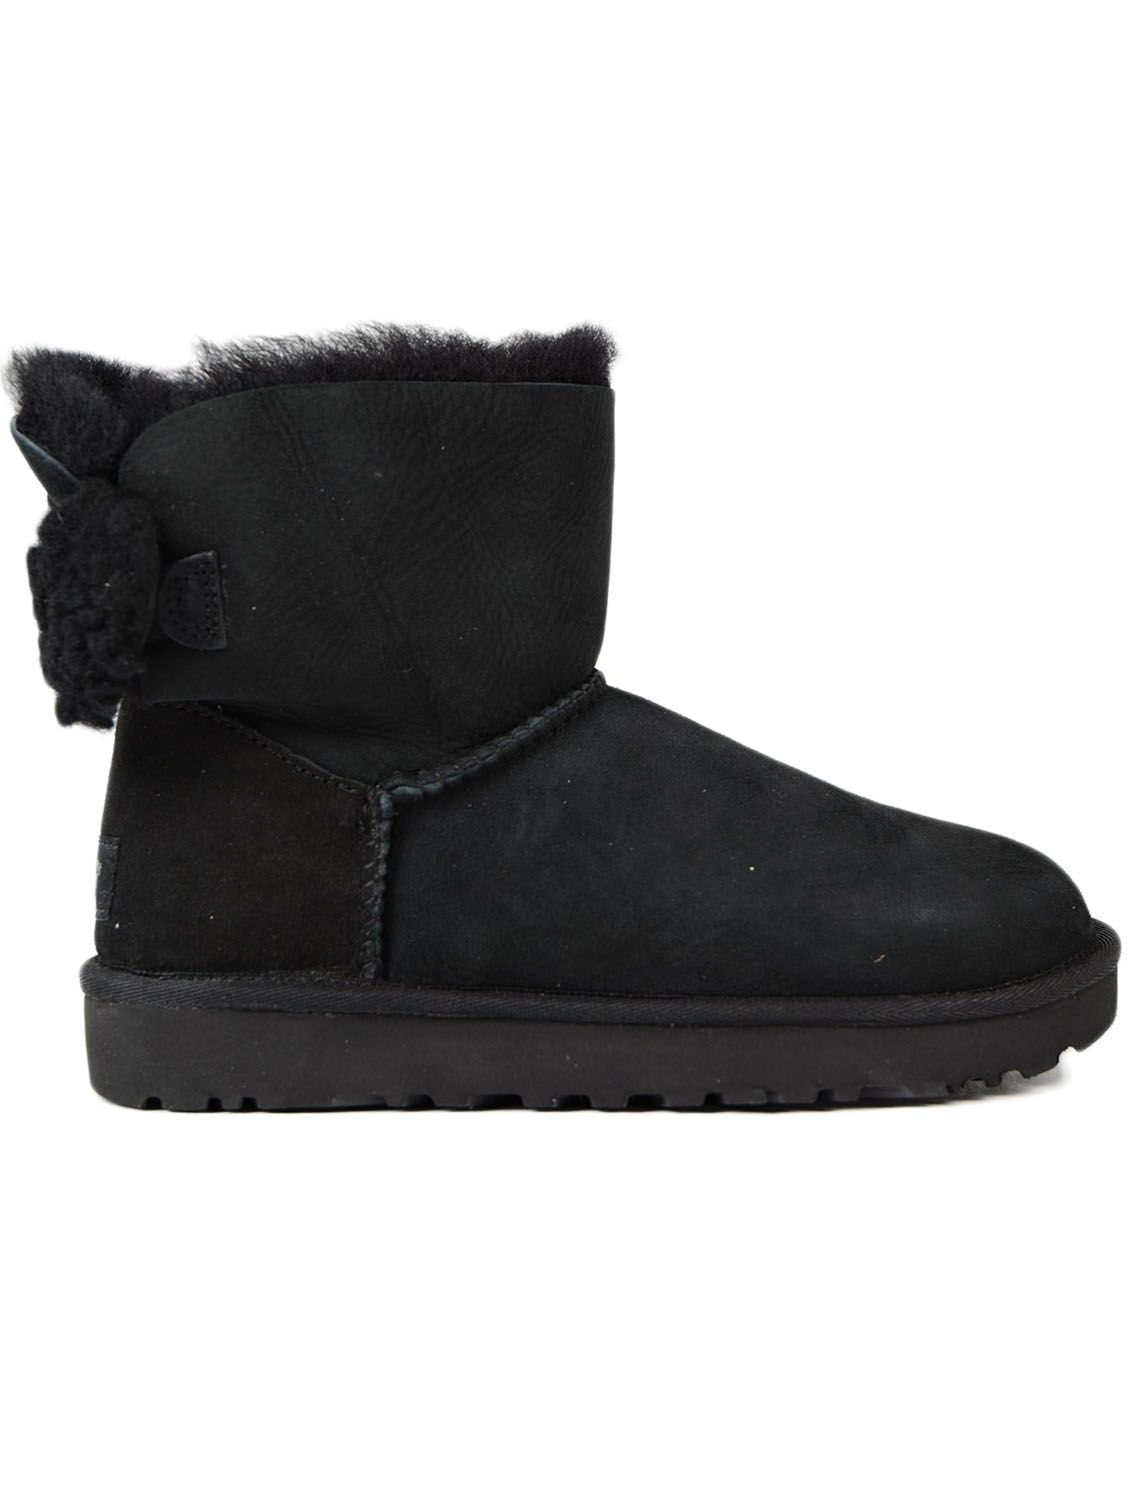 UGG Arielle Ankle Boots